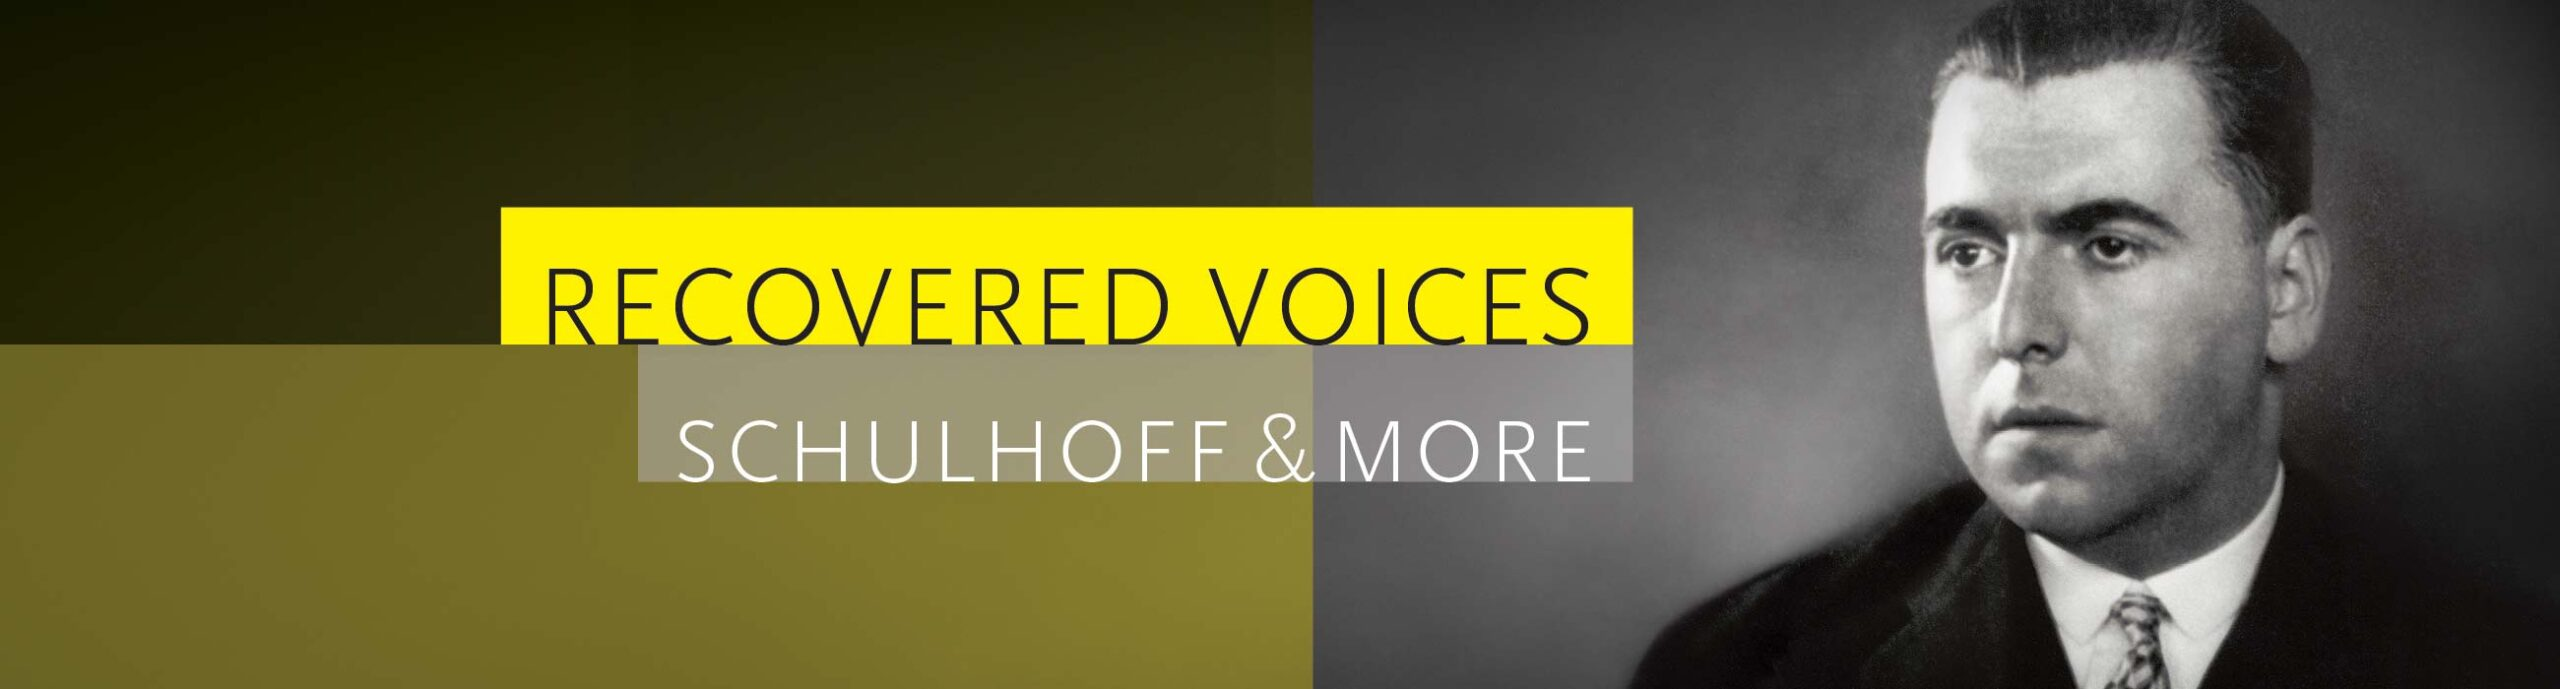 Recovered Voices: Schulhoff & More